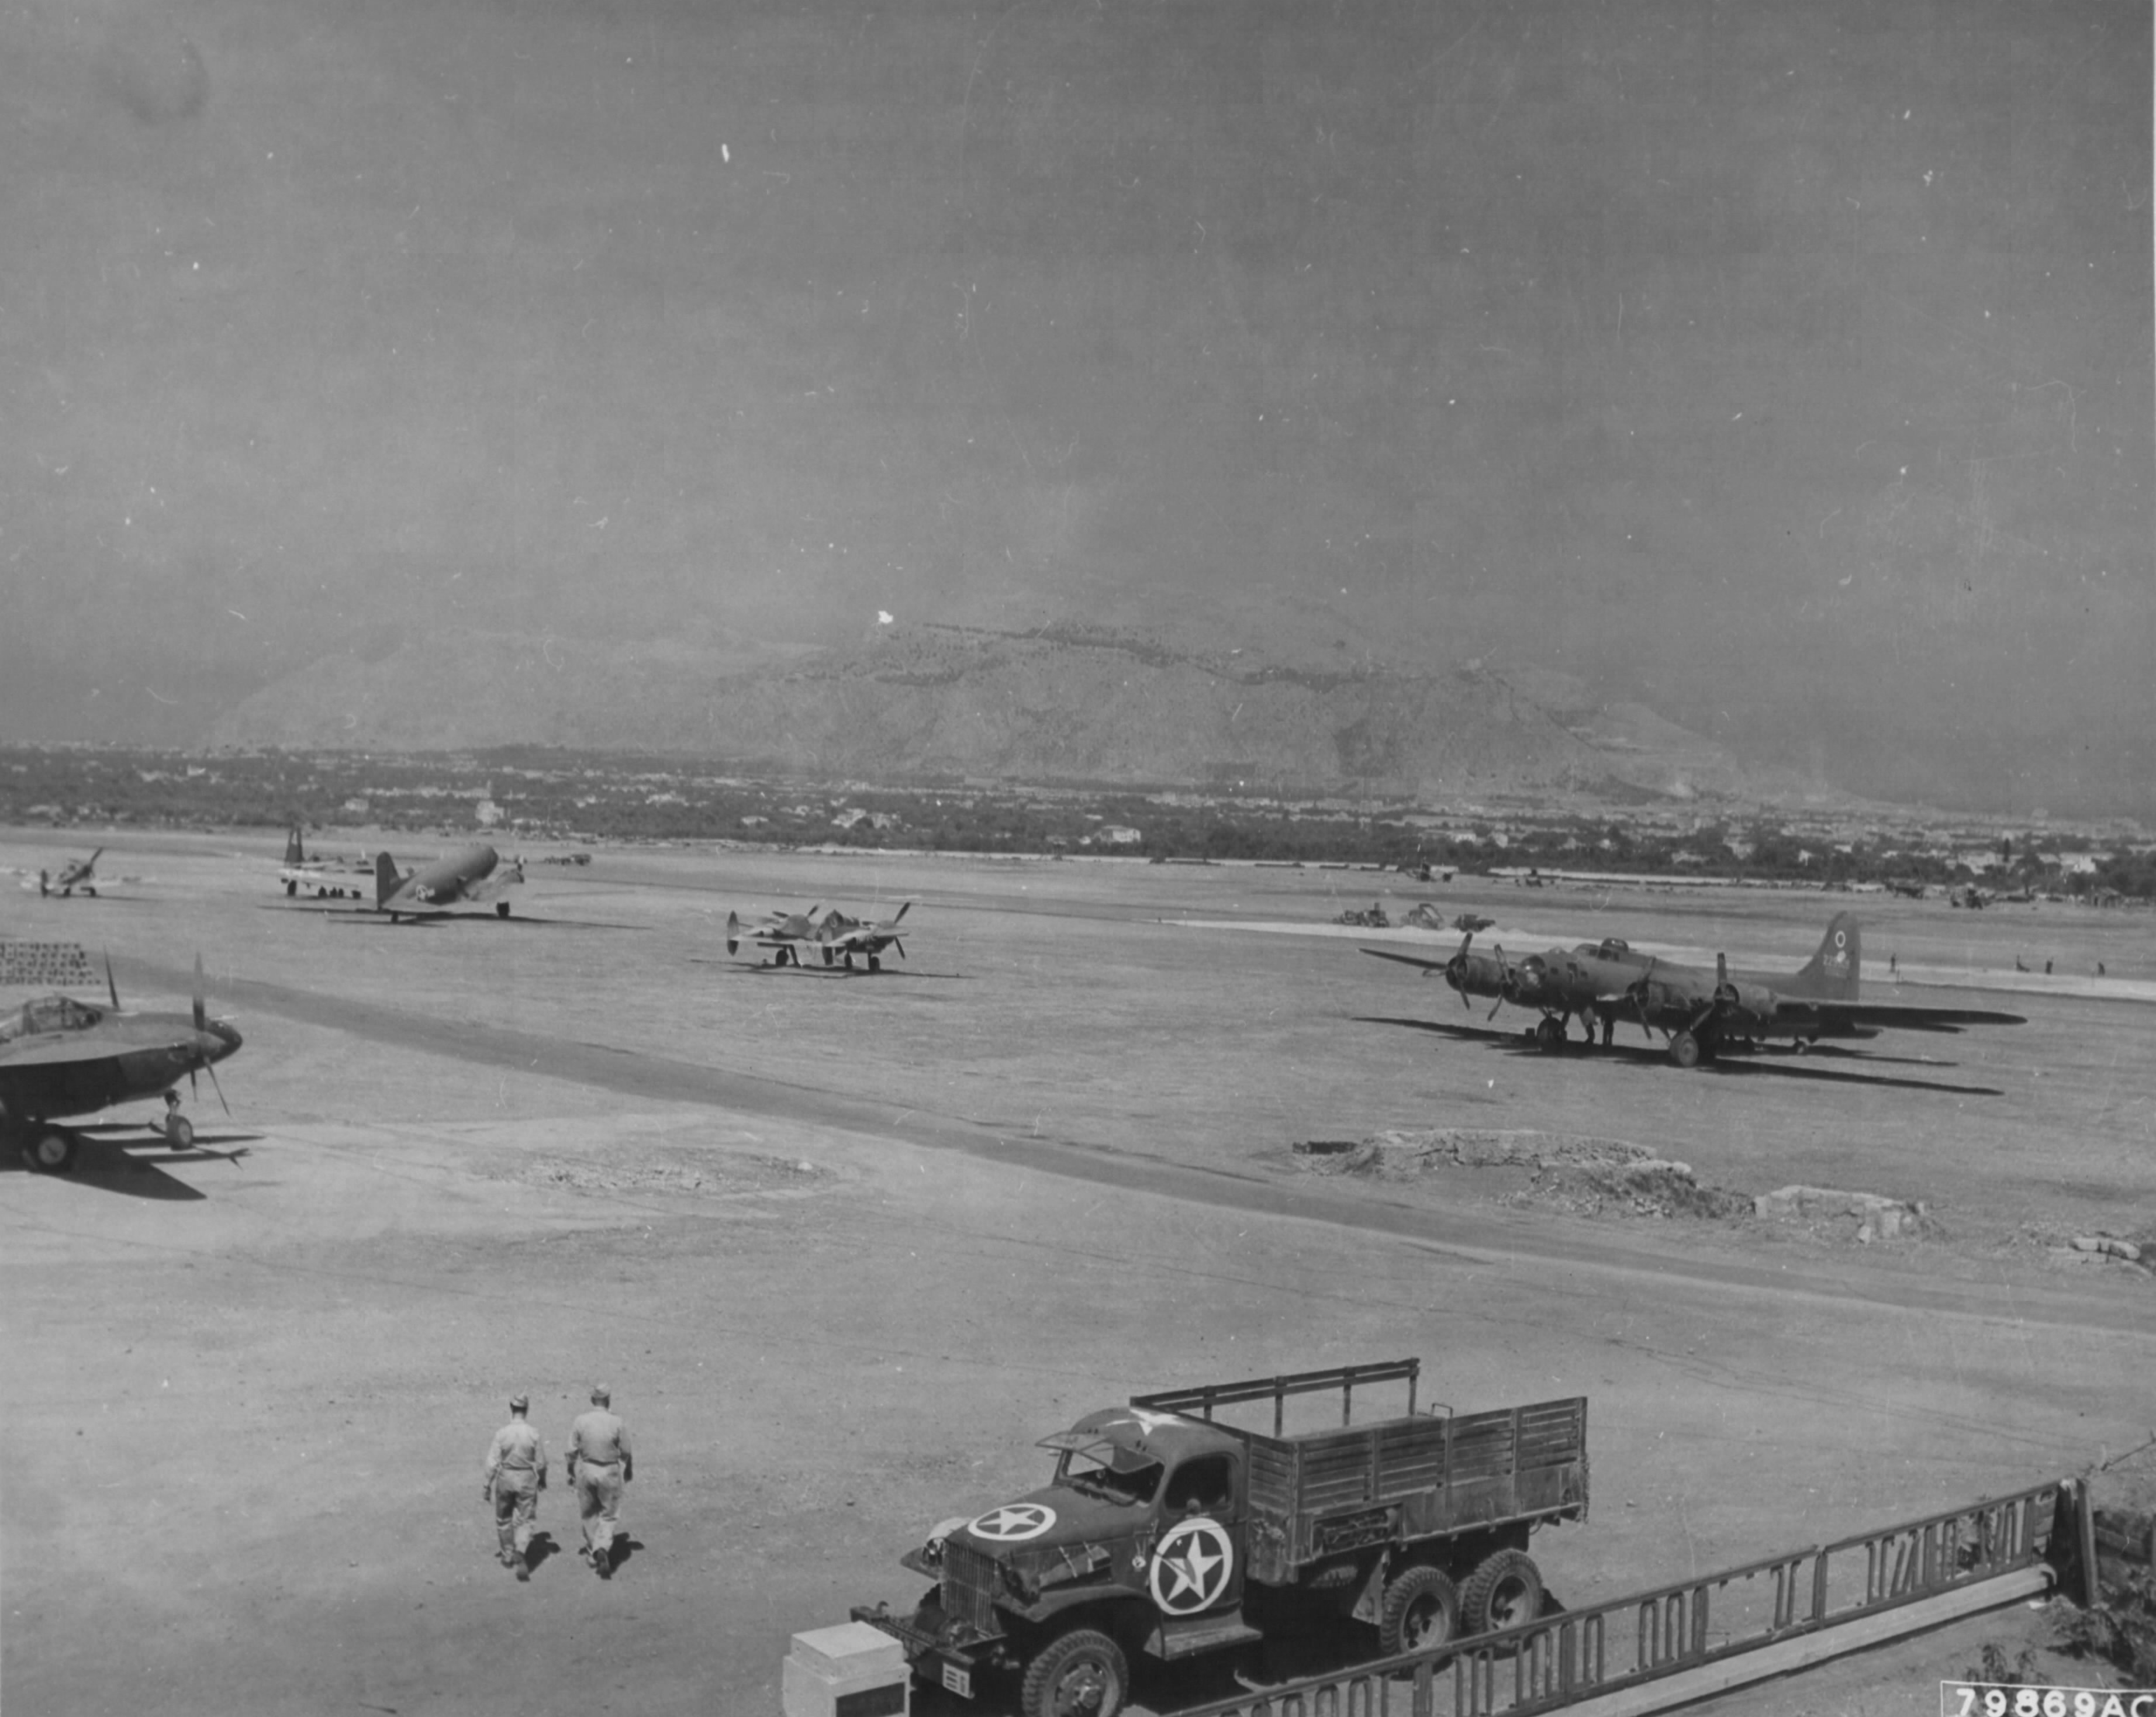 Airbase general view of an airfield at Palermo Sicily 2nd Oct 1943 01